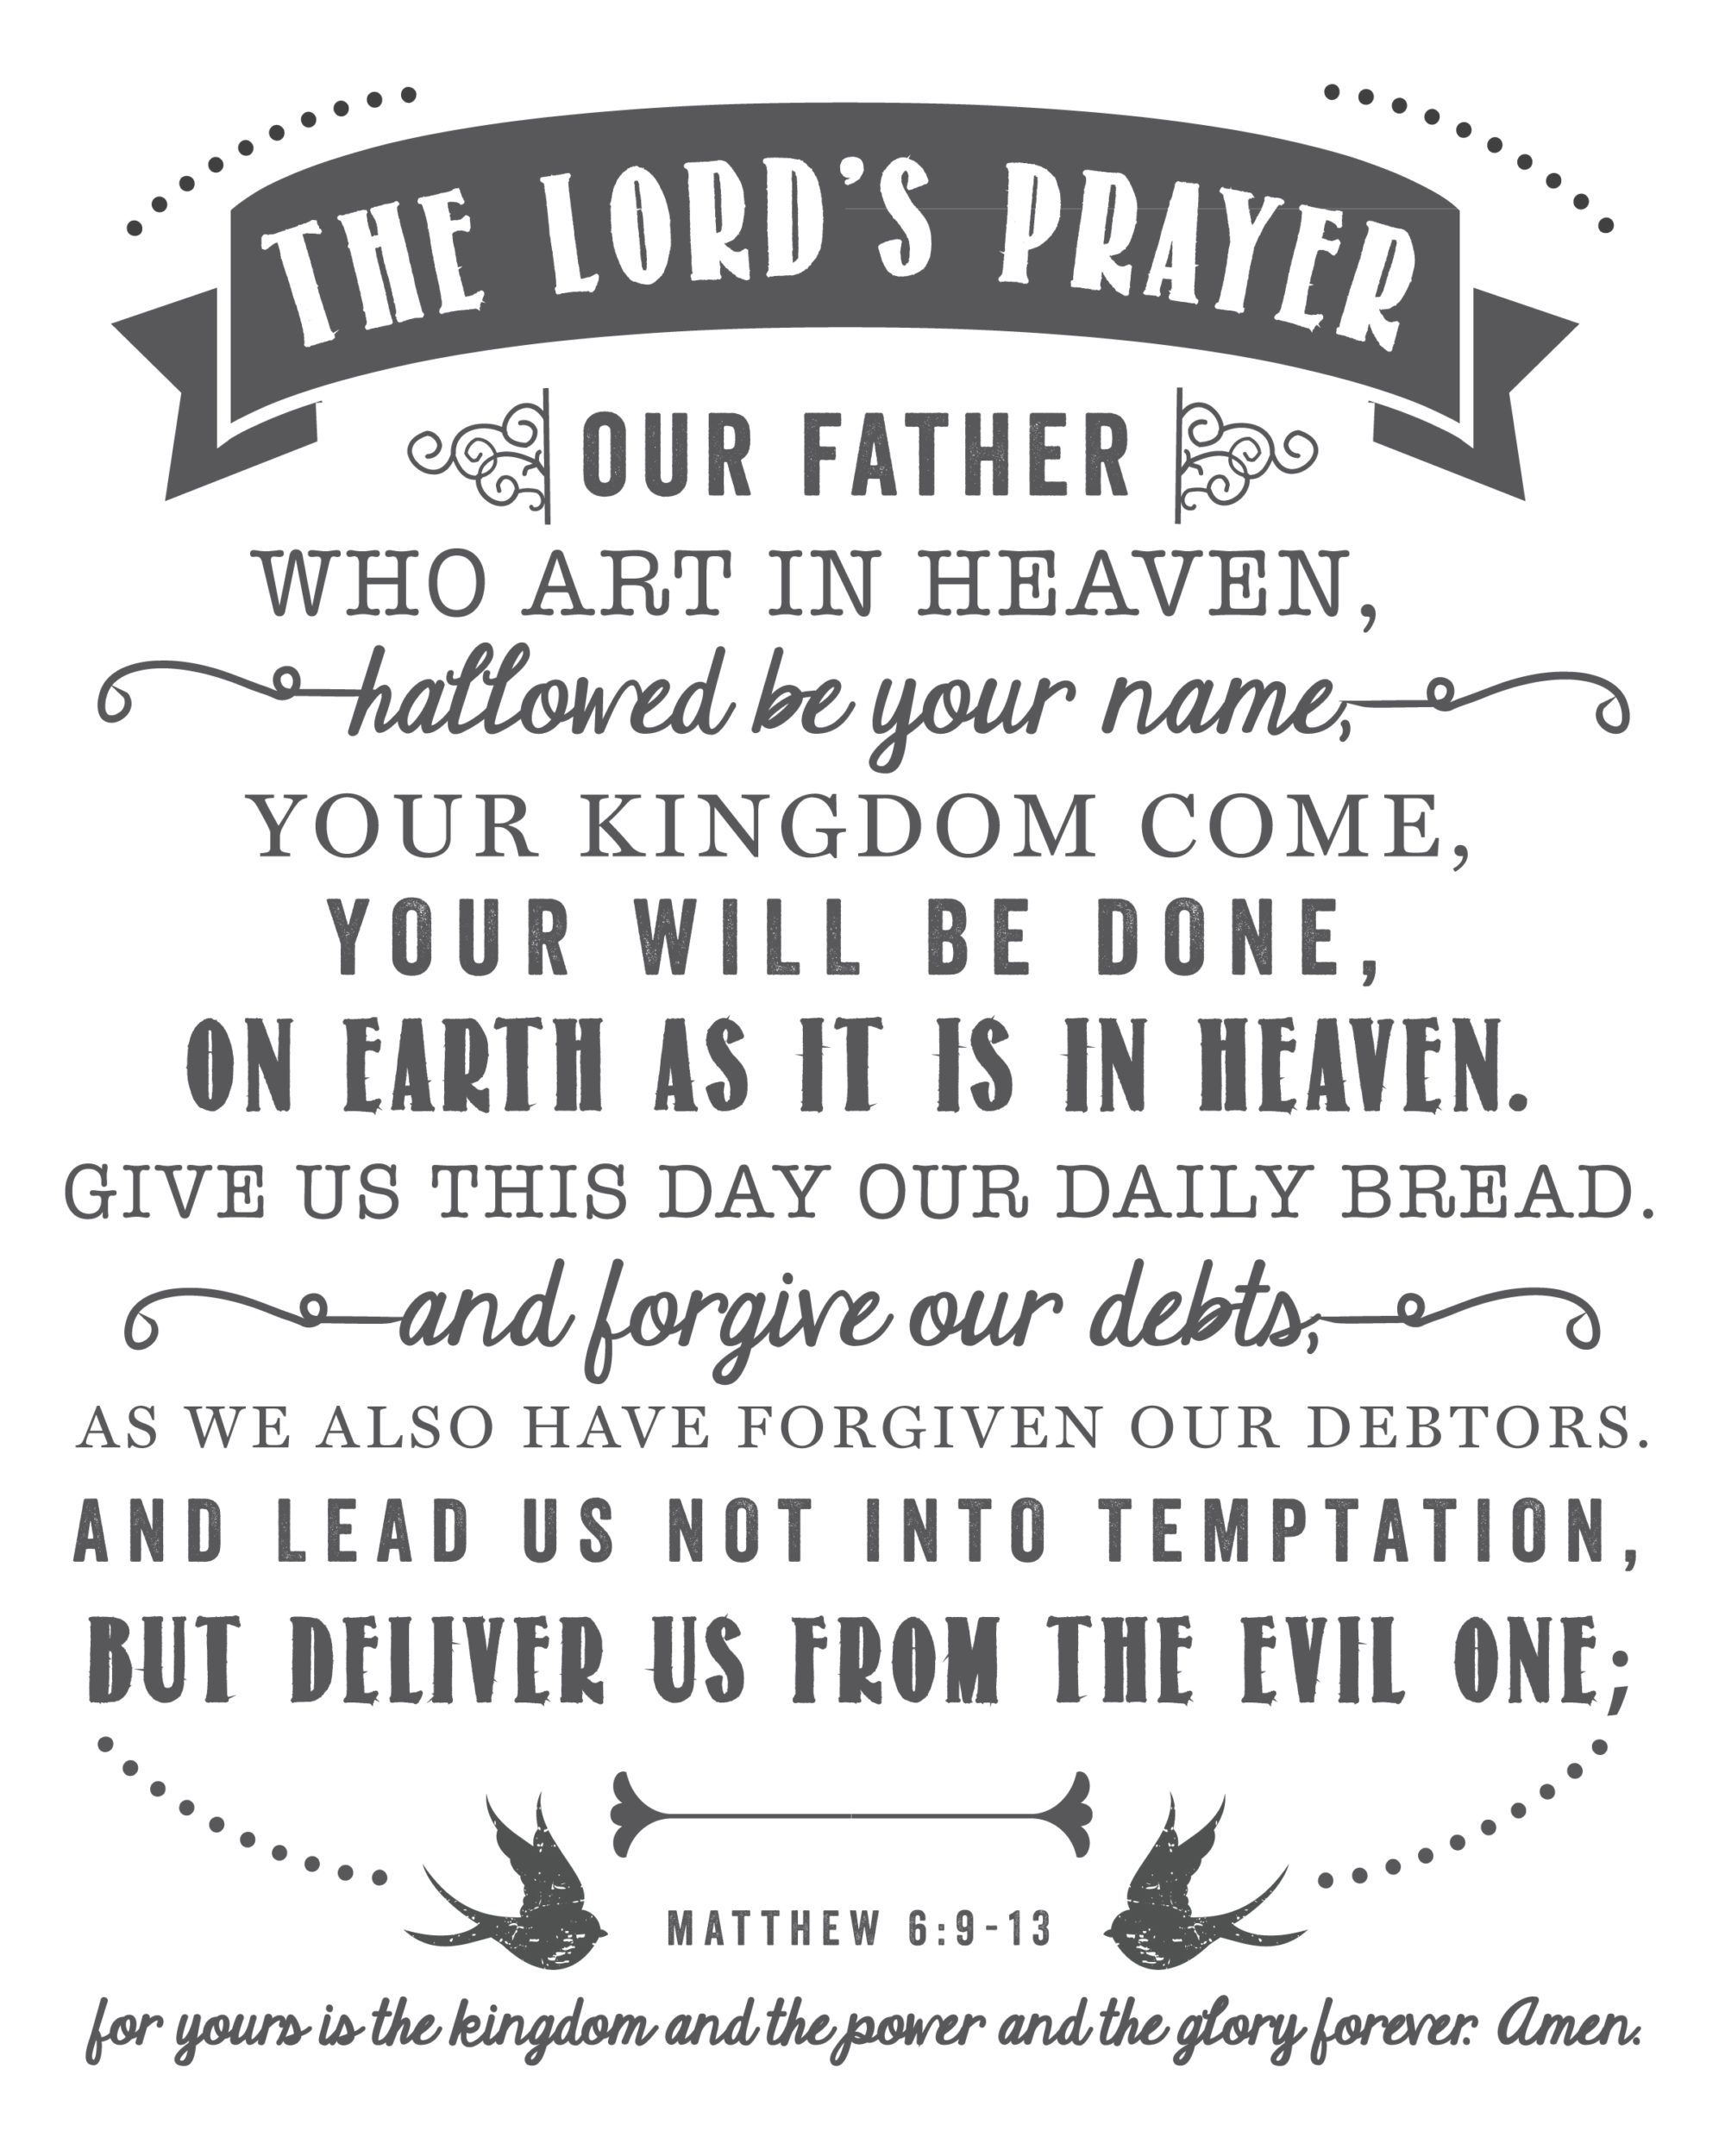 Fabulous image intended for printable copy of the lord's prayer